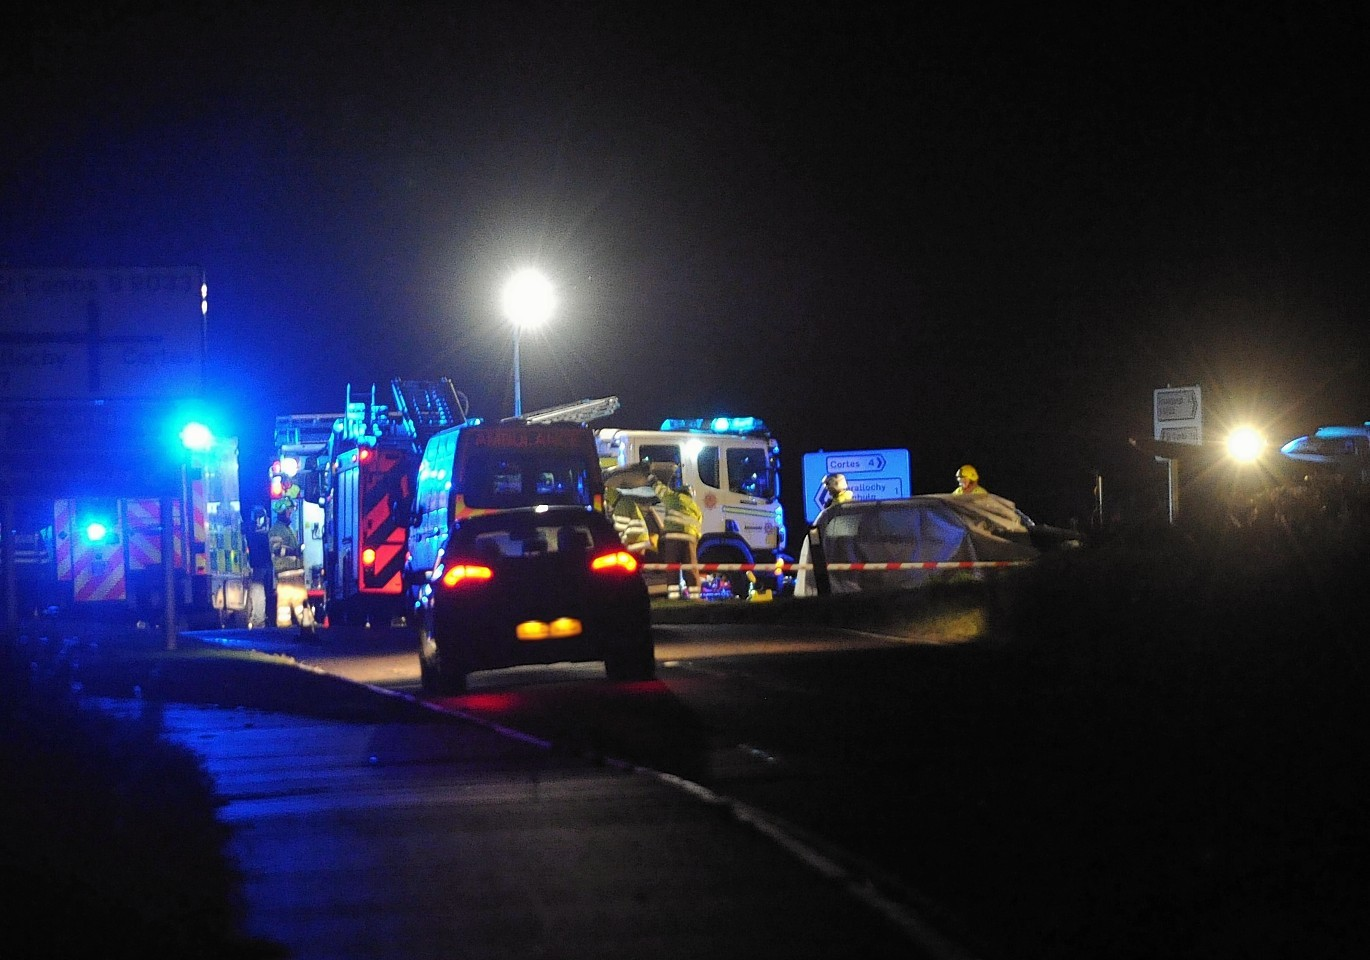 Emergency vehicles at the scene of the crash. Credit: Duncan Brown.